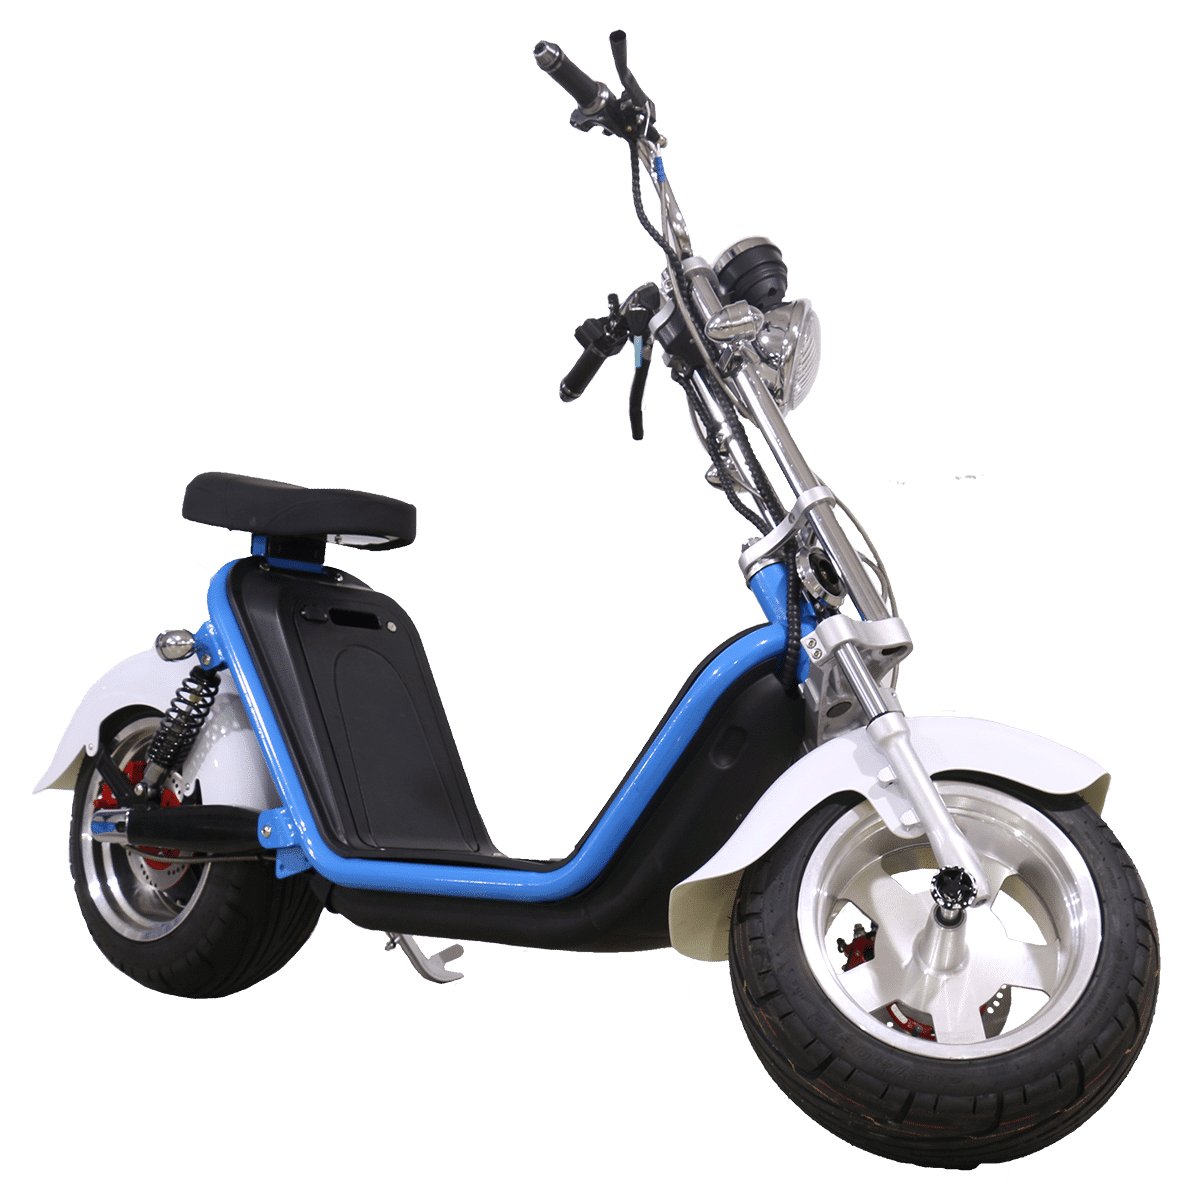 Caigiees 4.0 Bleu version 2500W